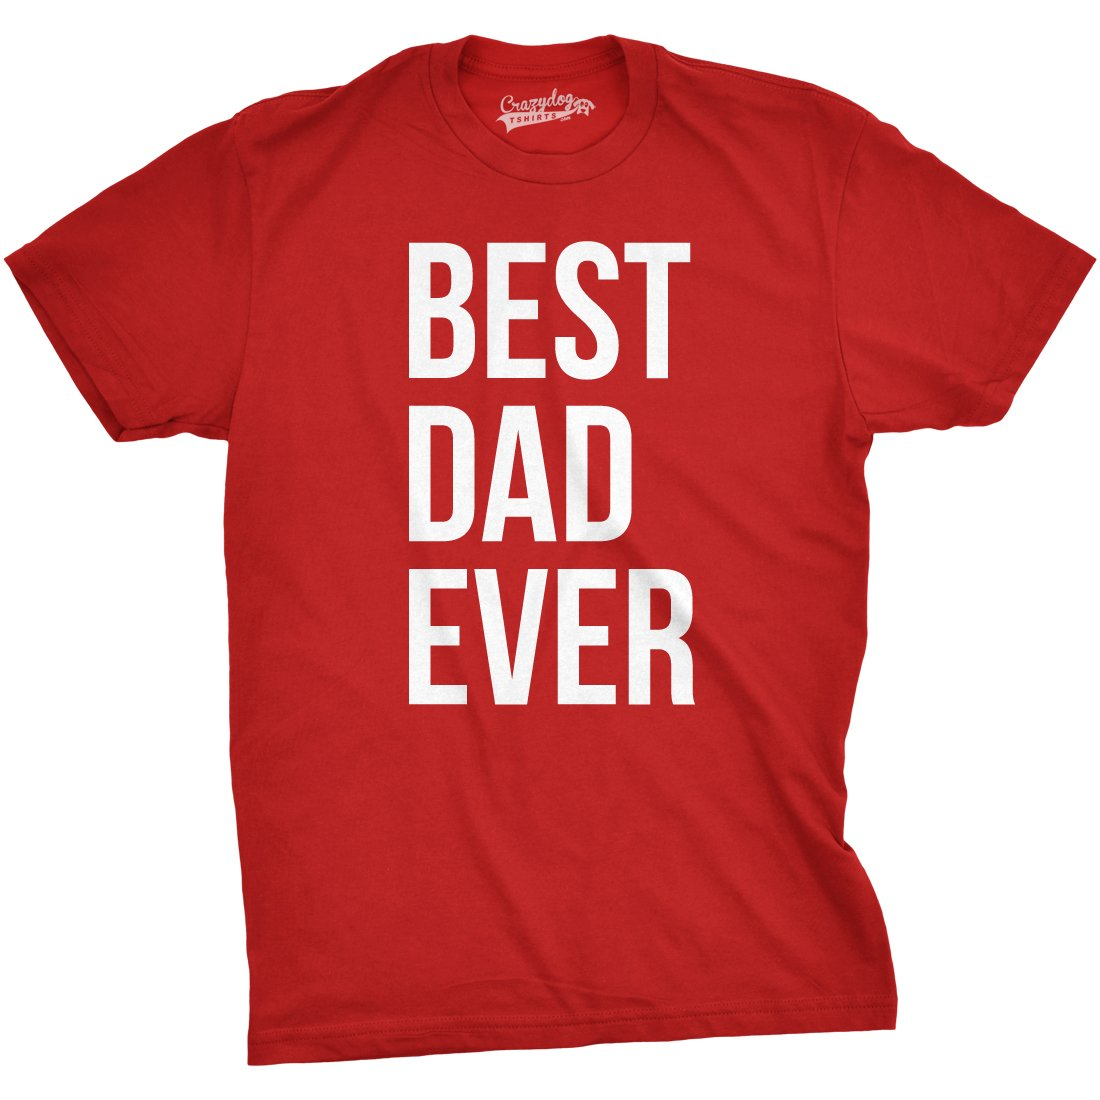 4f0c65a6 Mens Best Dad Ever T Shirt Funny Sincere Parenting Tee For Fathers Day:  Amazon.ca: Sports & Outdoors